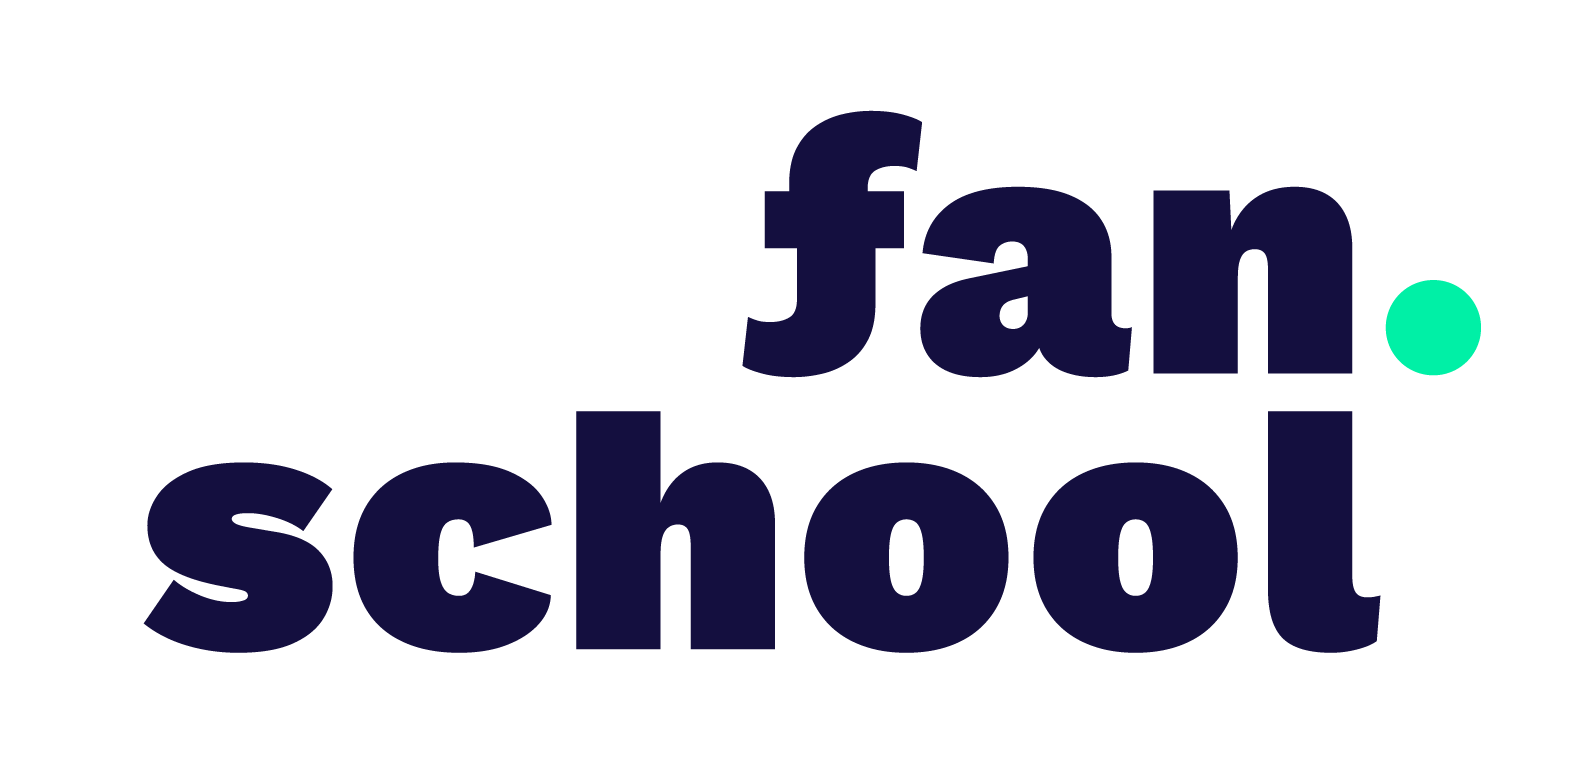 Fanschool: The future of Kidblog